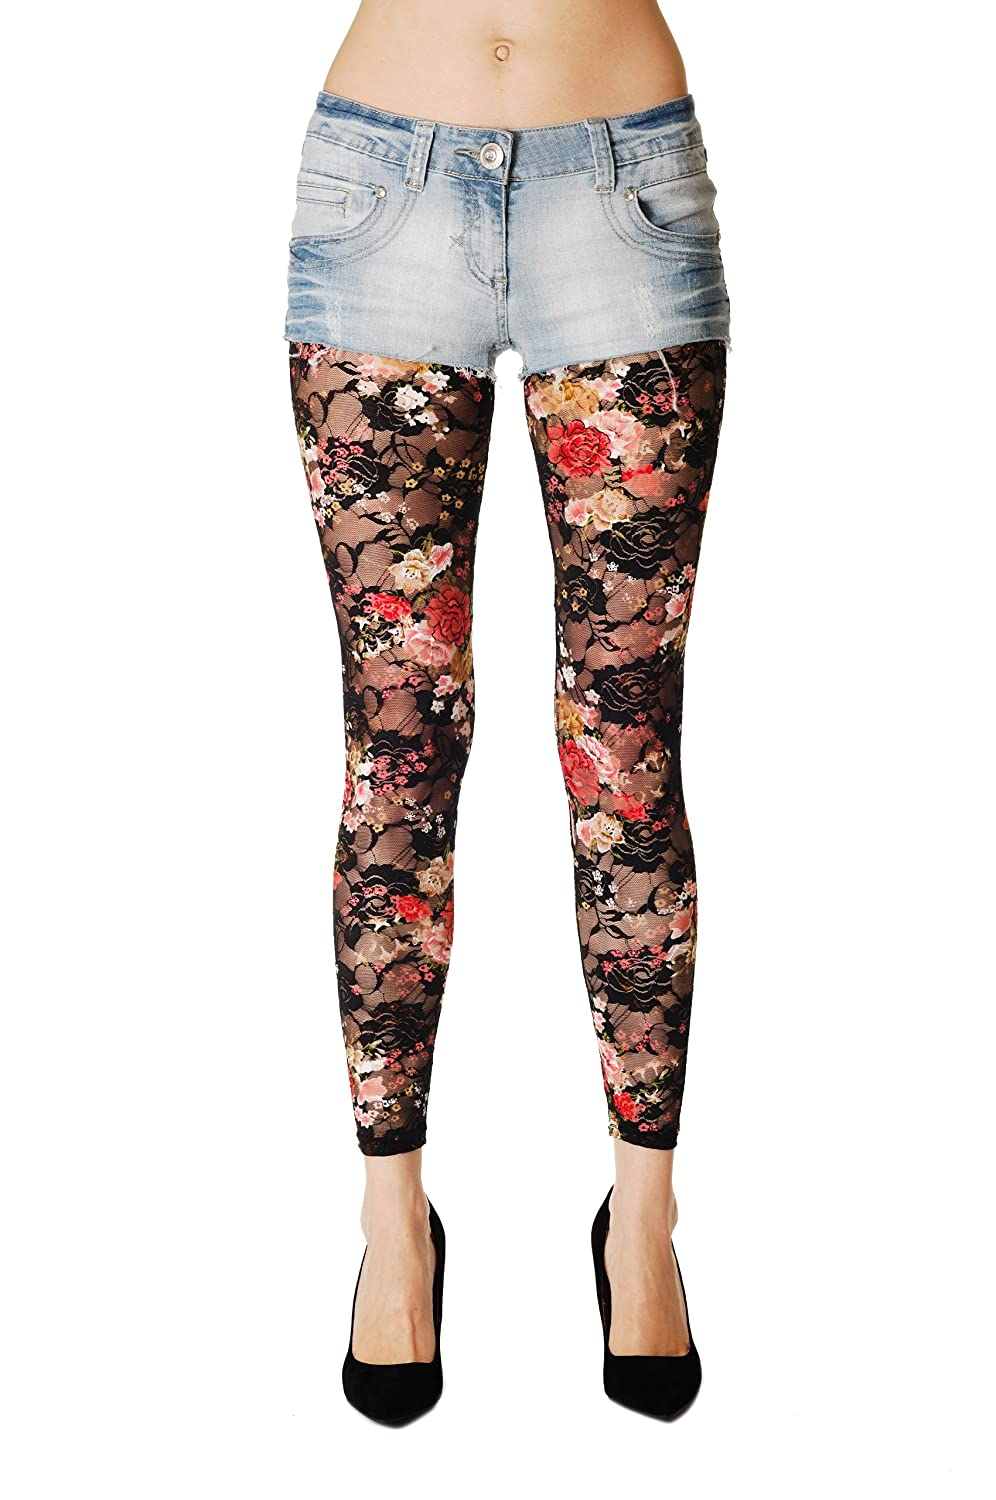 Lace With Roses - Multicolore Semi-Opaque Leggings Taille Unique (34-42) 094ac6282f2